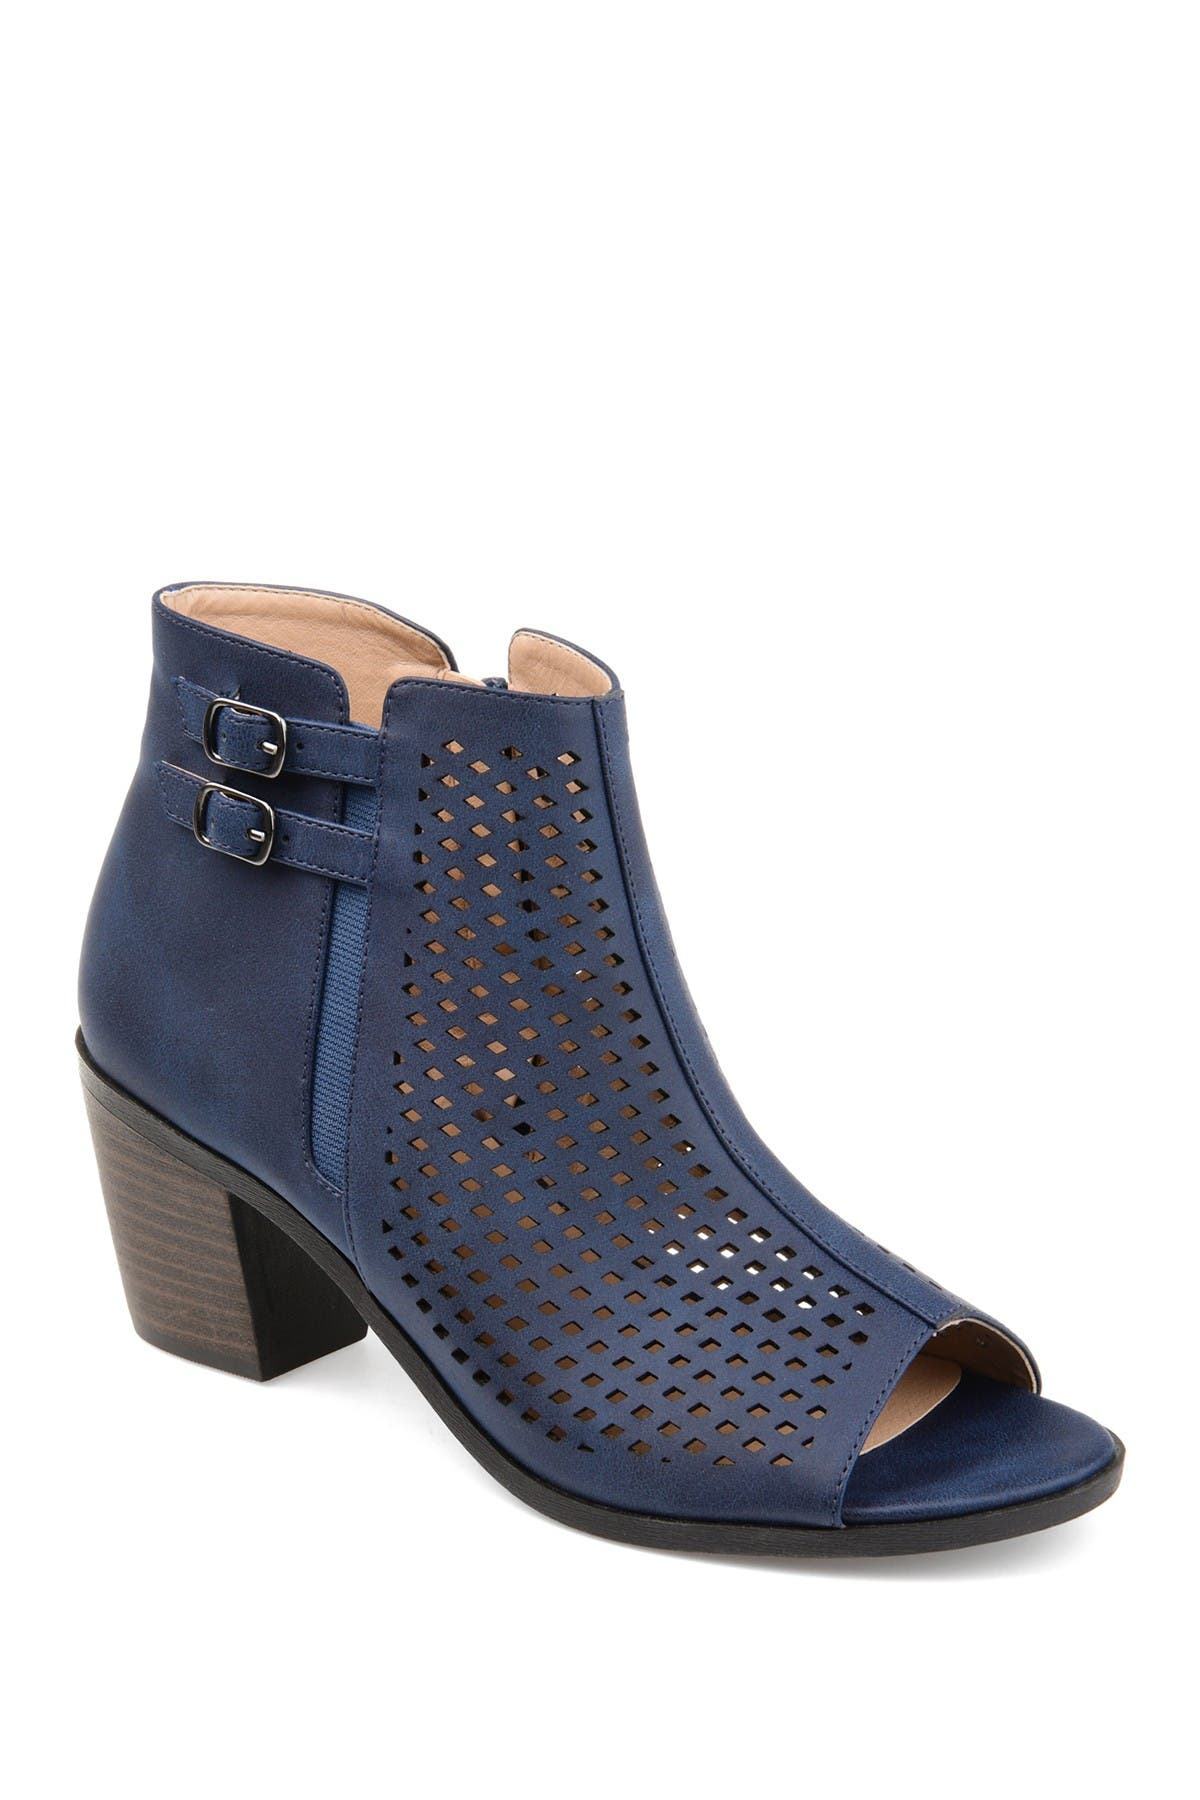 Image of JOURNEE Collection Harlem Perforated Bootie